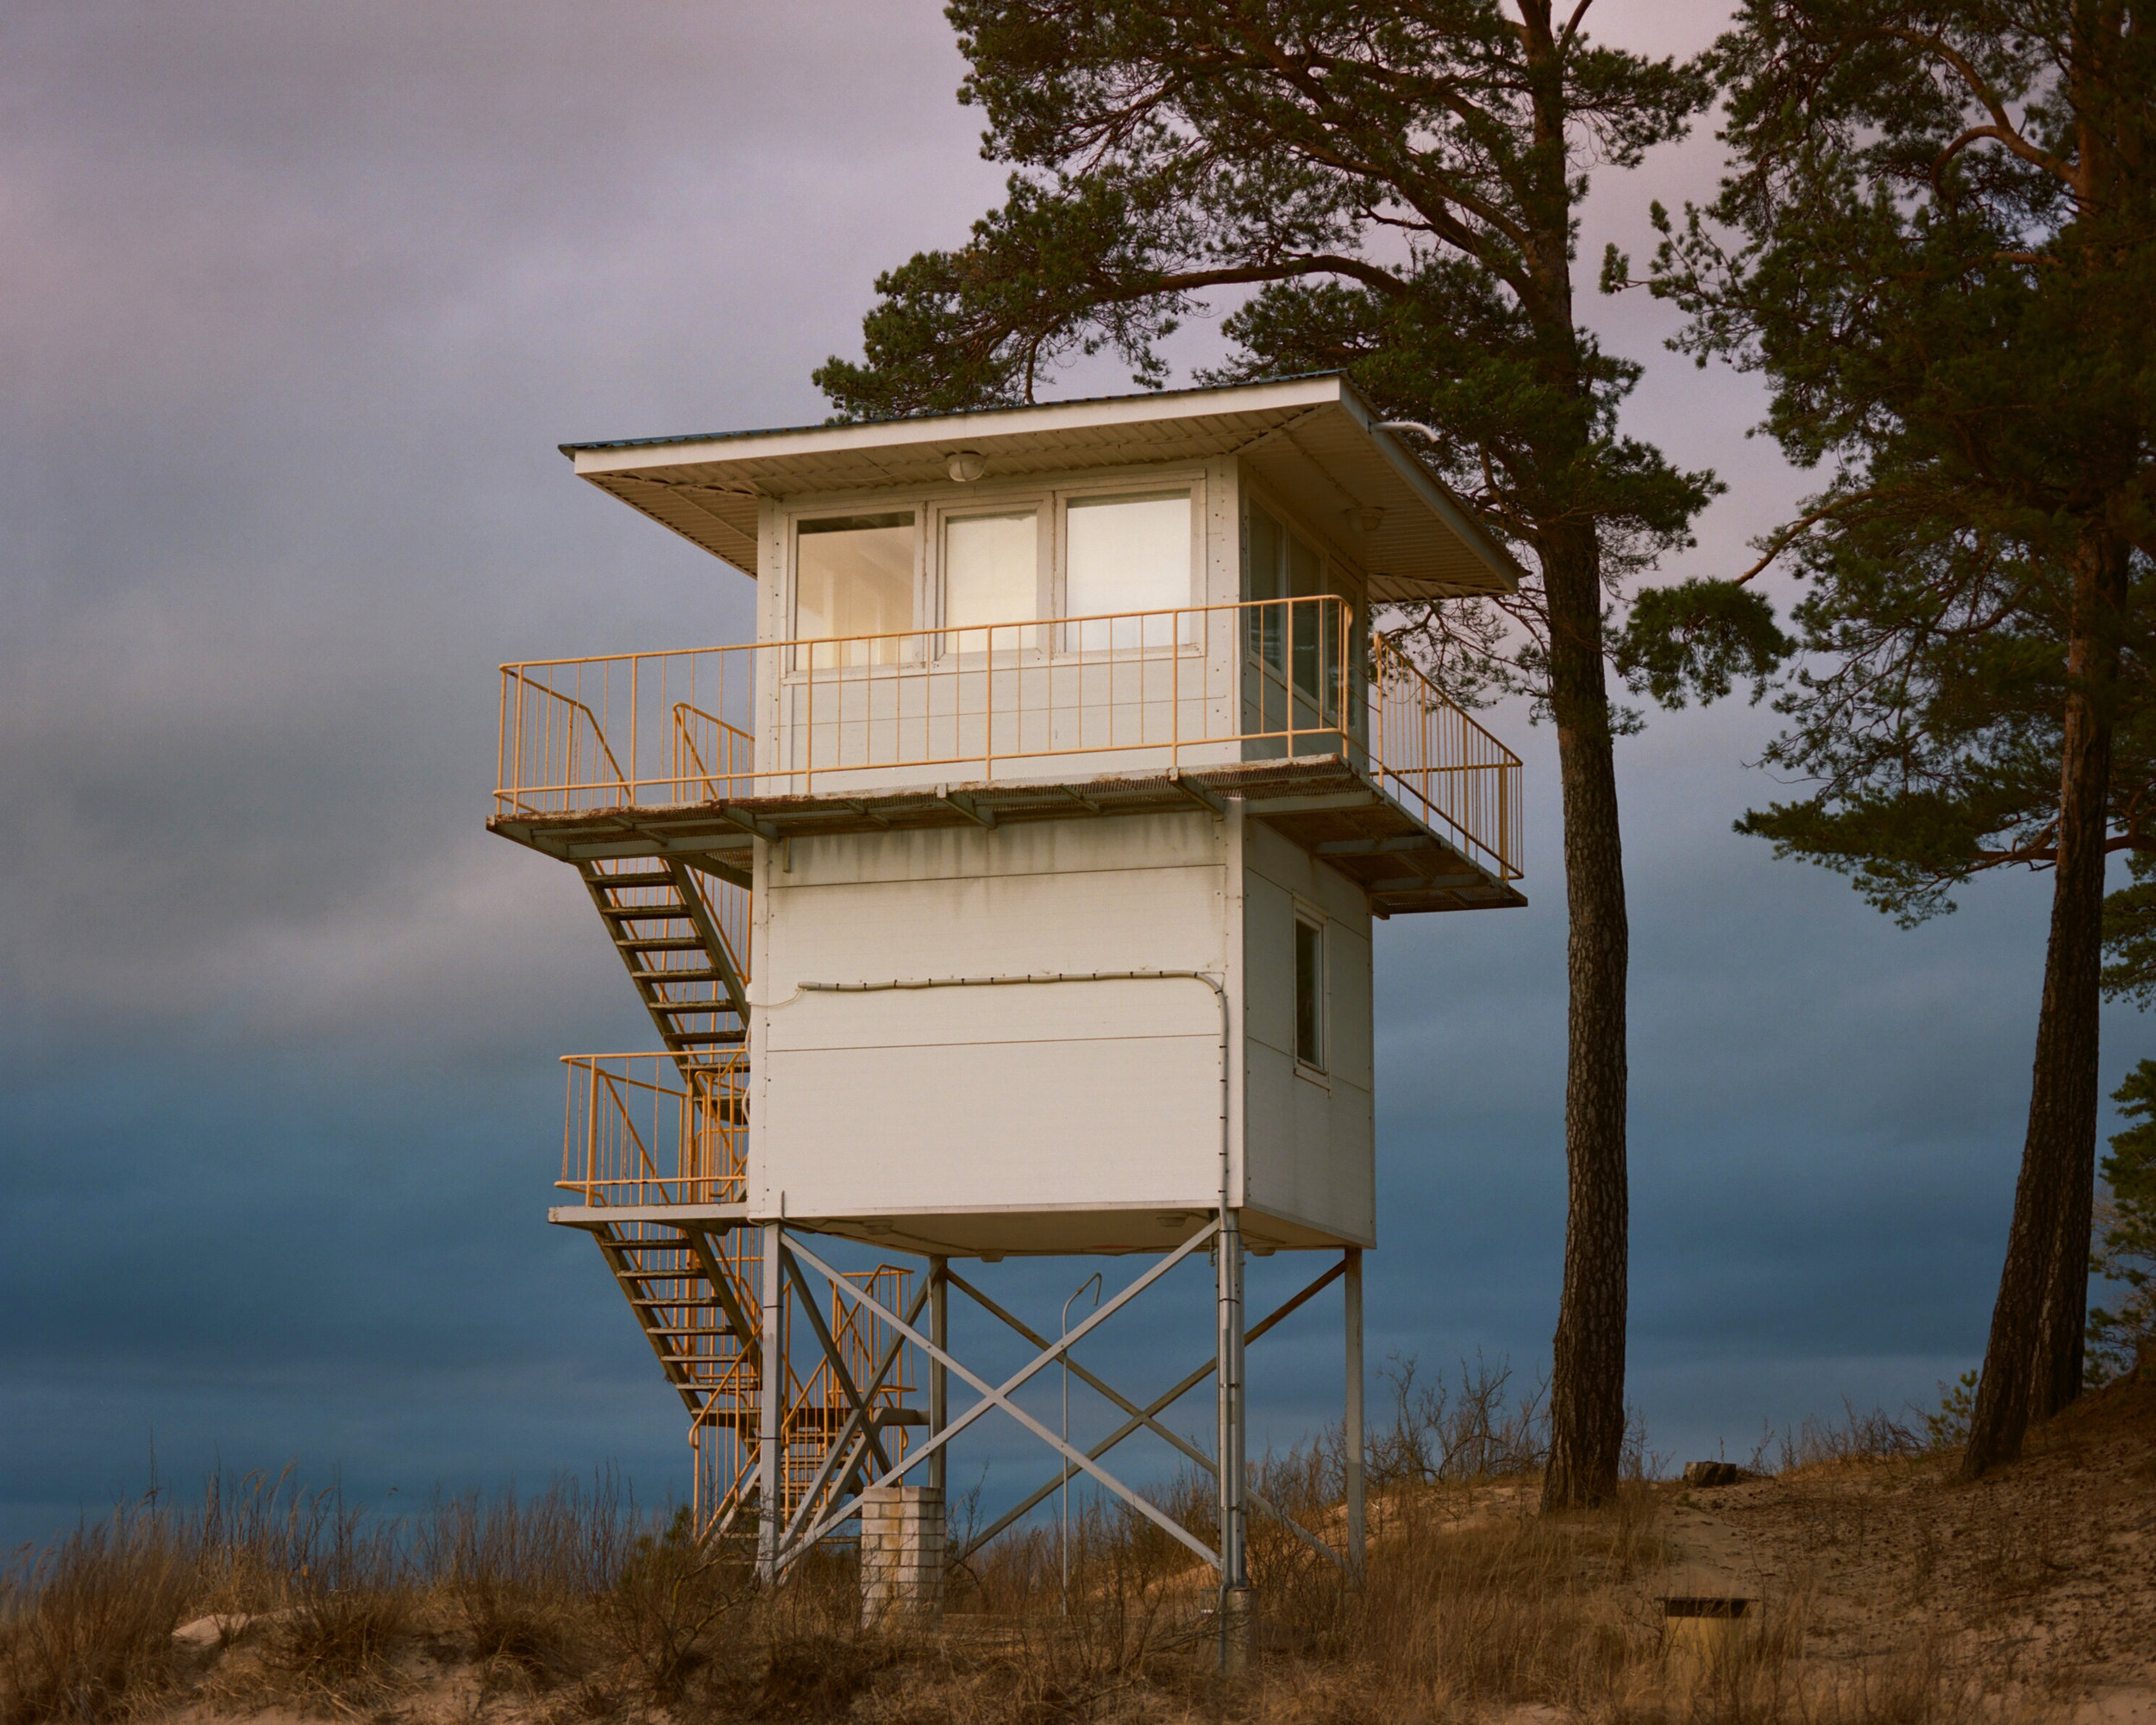 A viewing platform to observe birds and wildlife on the Baltic Coast, in Narva-Jõesuu, Estonia.